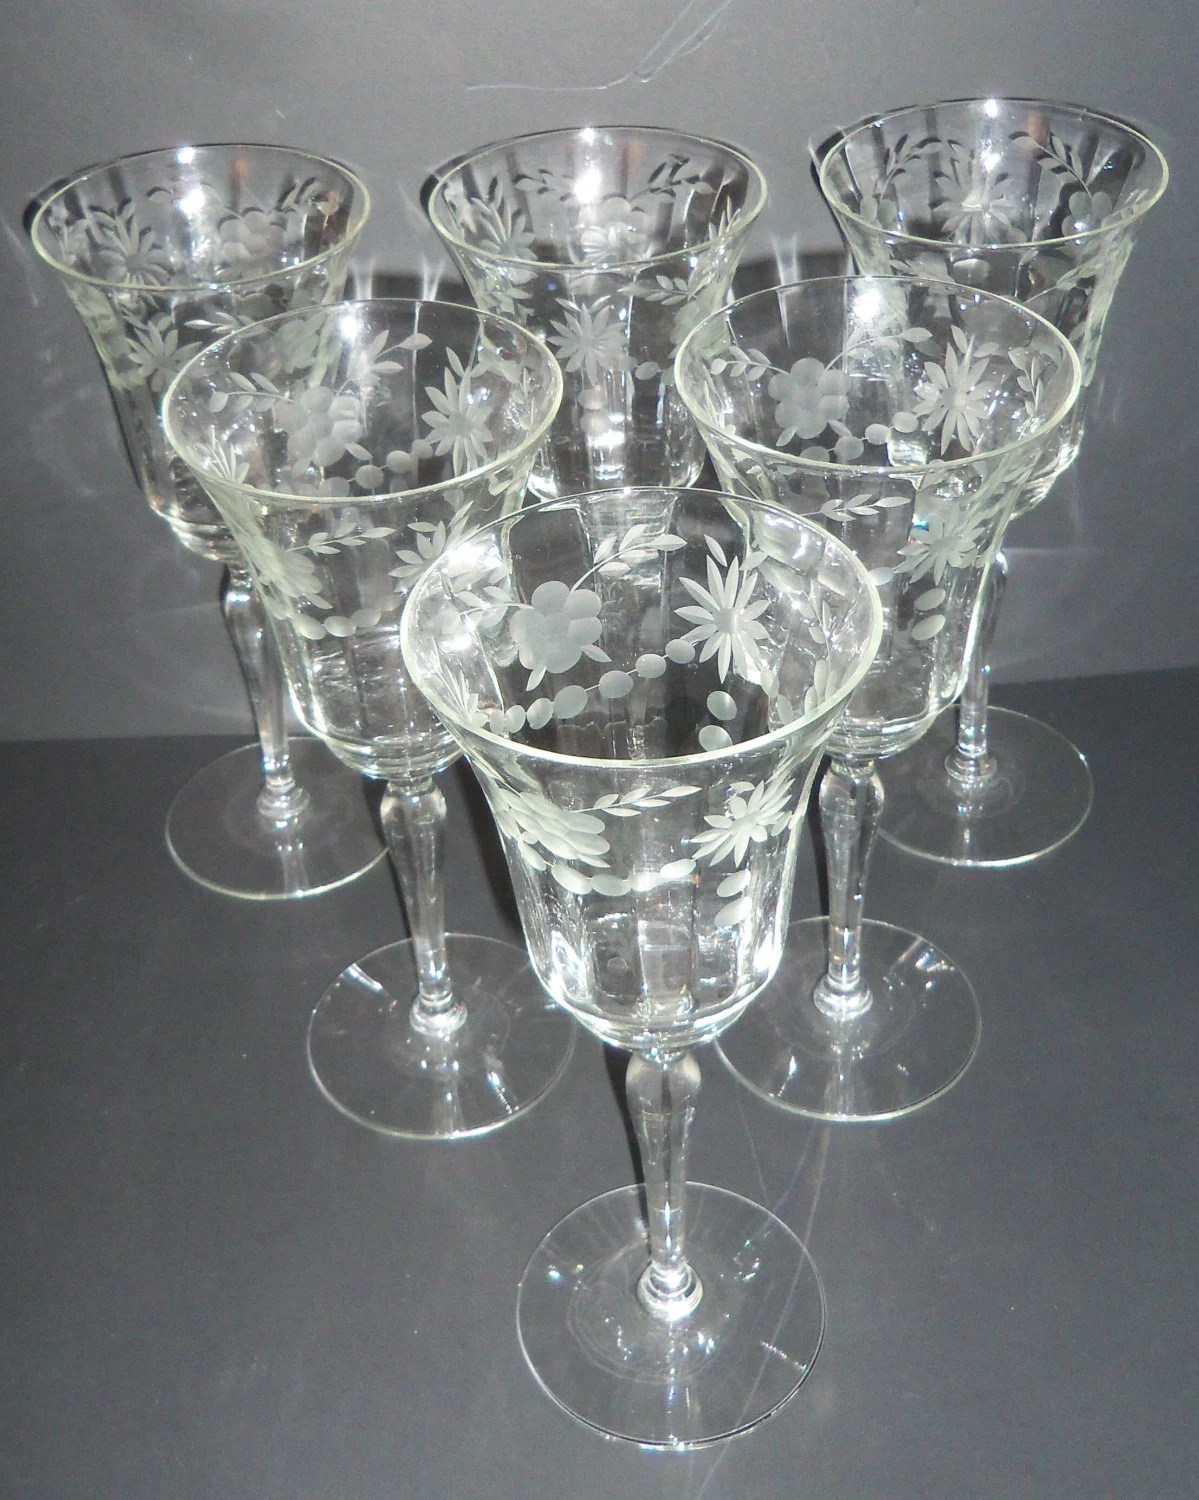 Crystal Stemware Wine Glasses Six Etched Crystal Wine Glasses Vintage Stemware